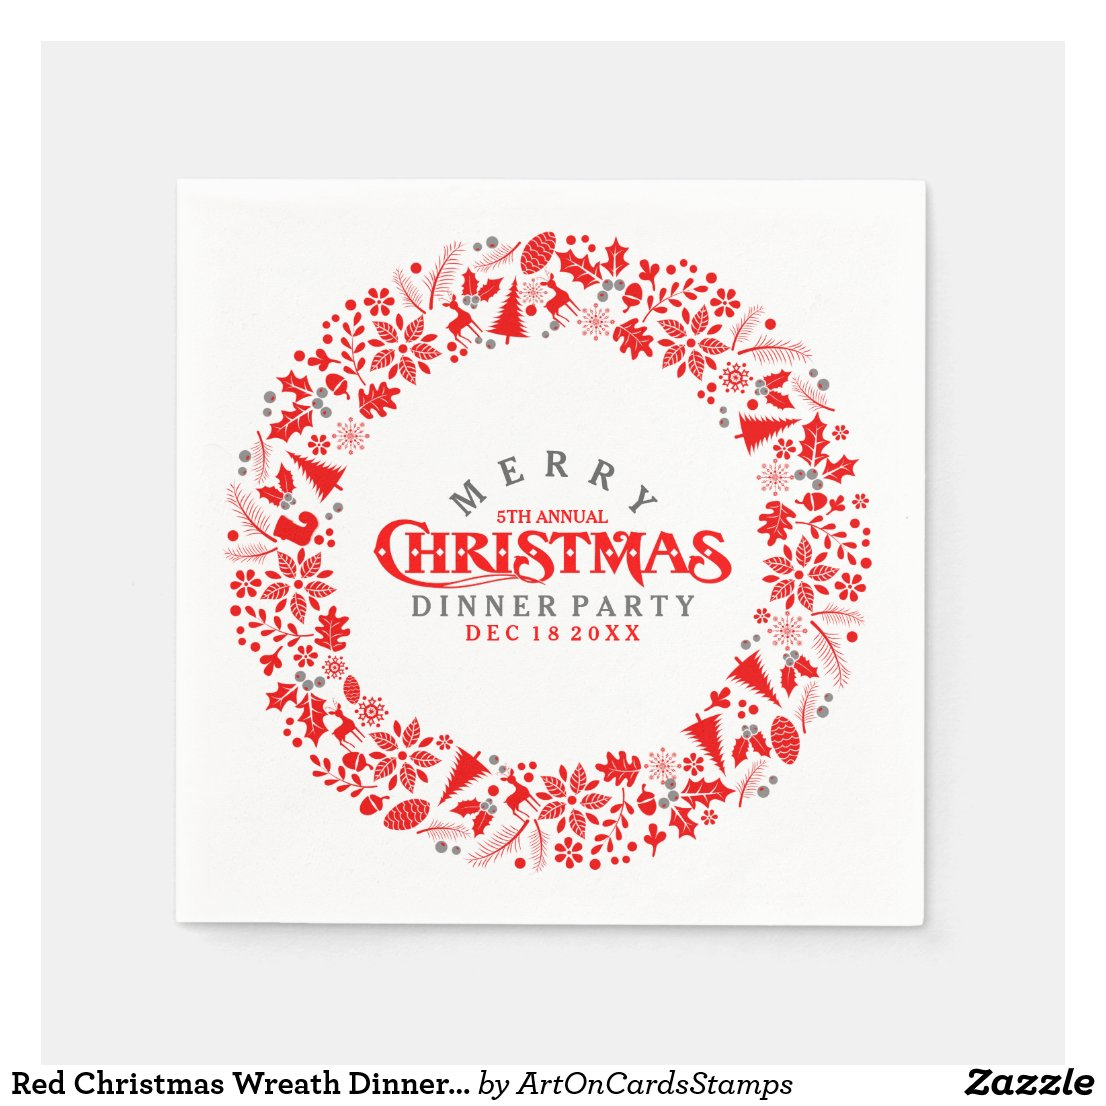 Red Christmas Wreath Dinner Party Invite Napkin